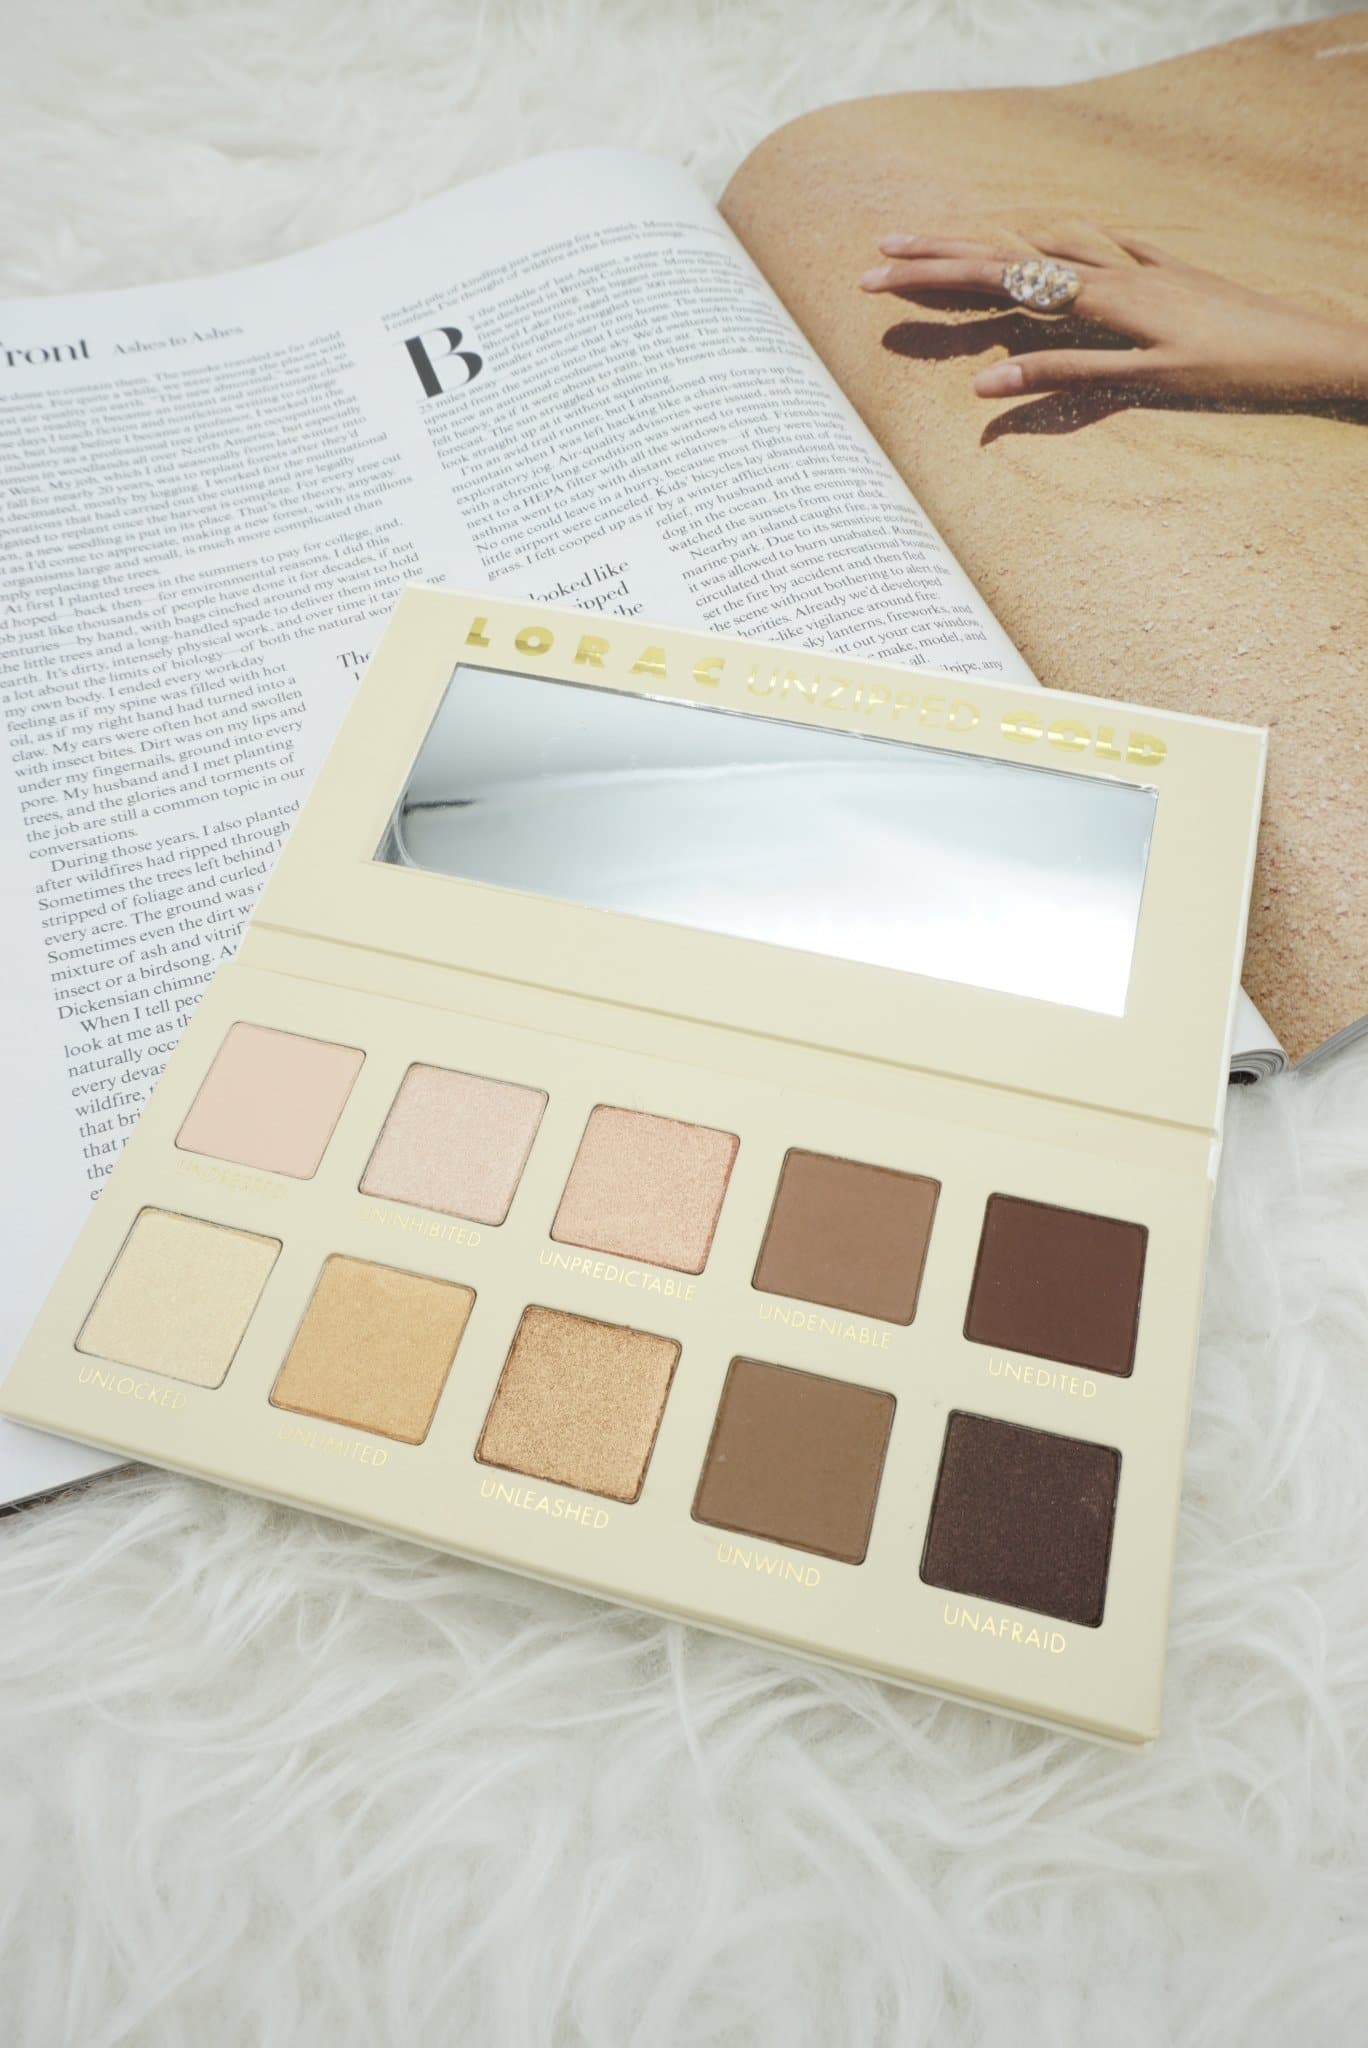 LORAC Cosmetics Unzipped and Unzipped Gold Palettes + more   Haul, Review, and Swatches